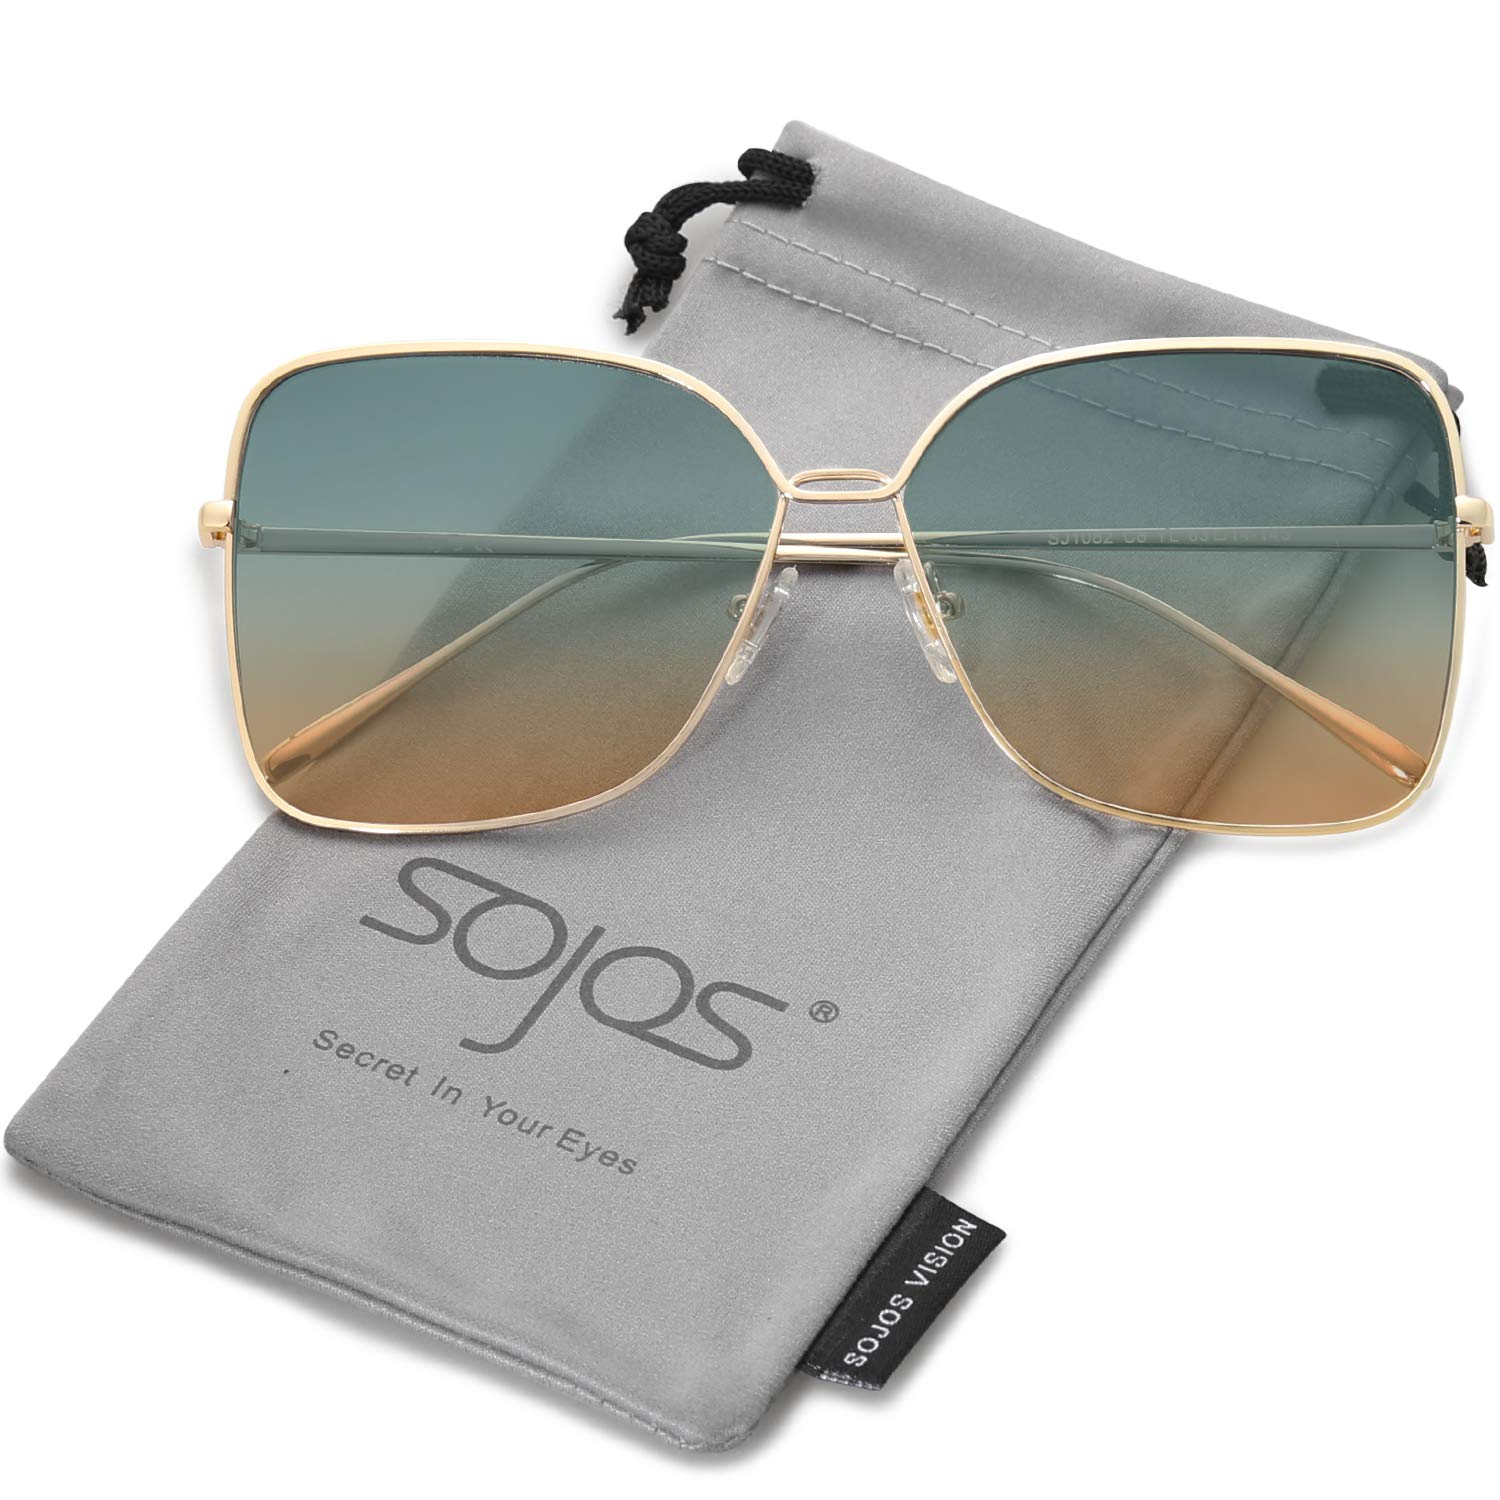 SOJOS Fashion Square Oversized Sunglasses Metal Frame Flat Mirrored Lens SJ1082 with Gold Frame/Green and Brown Lens